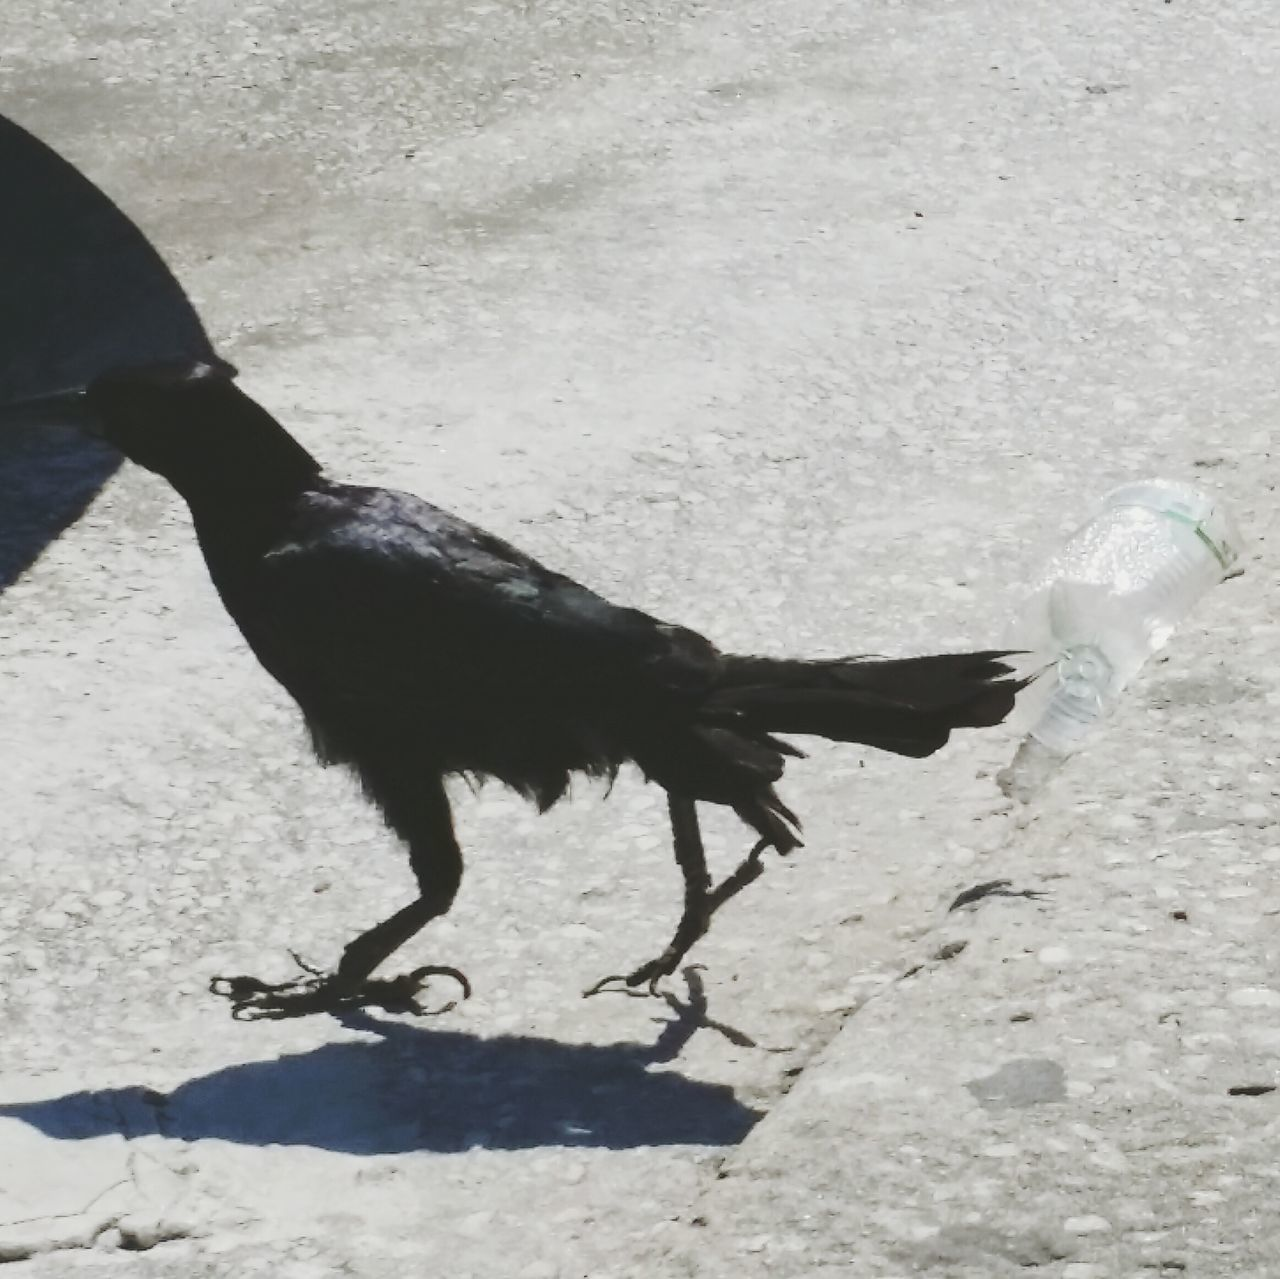 Street Photography Black Bird In The Street Nonchalantly Walking Past A Plastic Bottle. Hello World Recycle These The Great Outdoors Nature Photo Sun And ShadowOpen Edit The Week On EyeEm